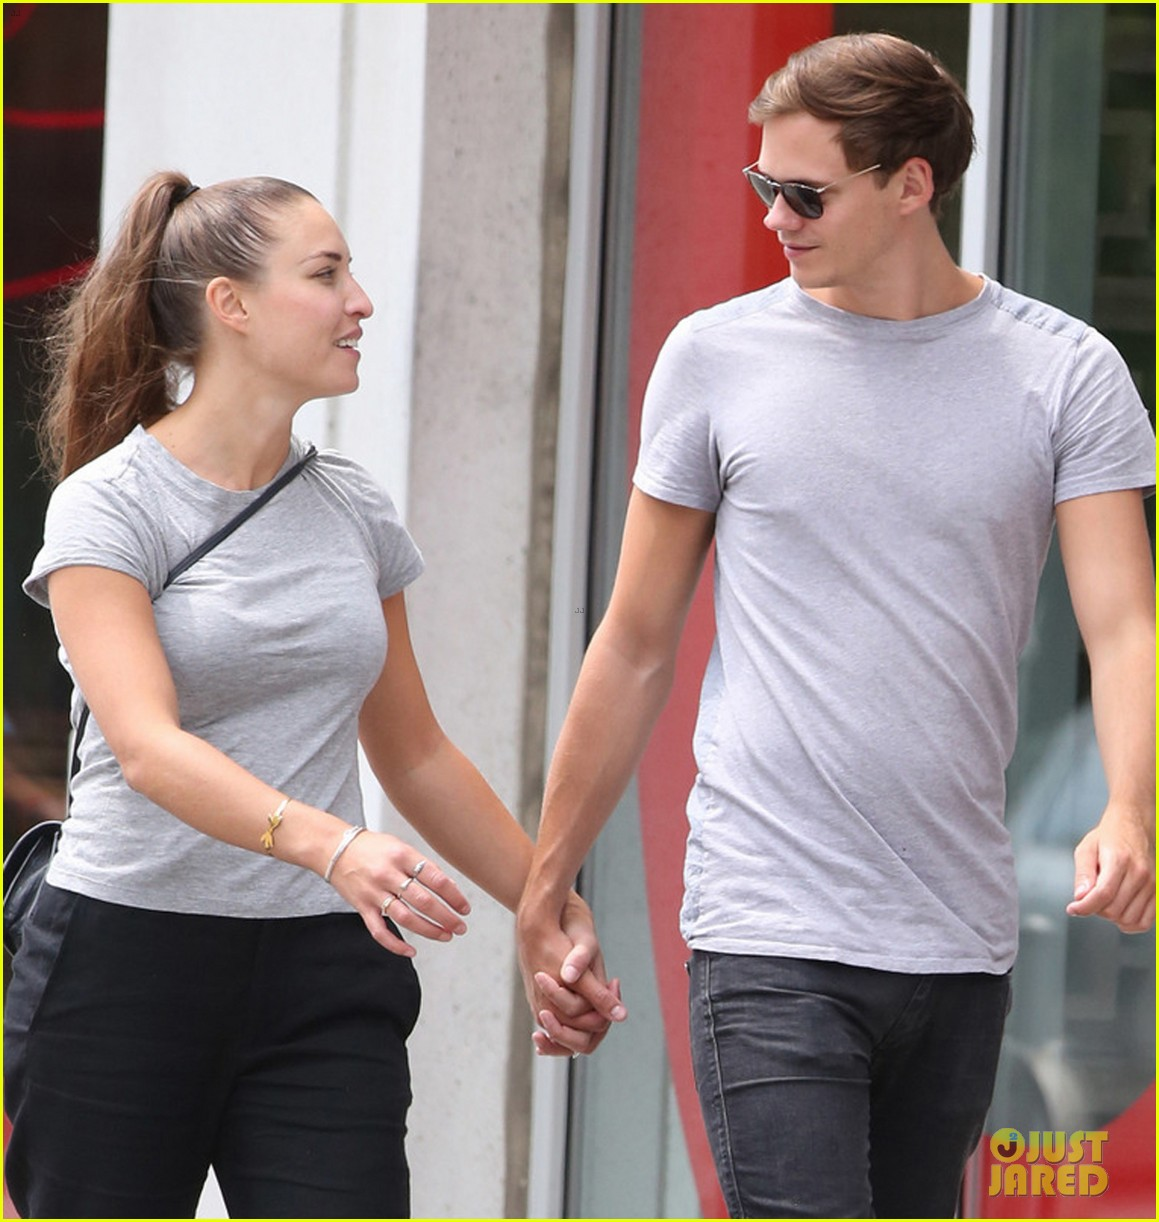 Alexis knapp dating bill skarsgard 2